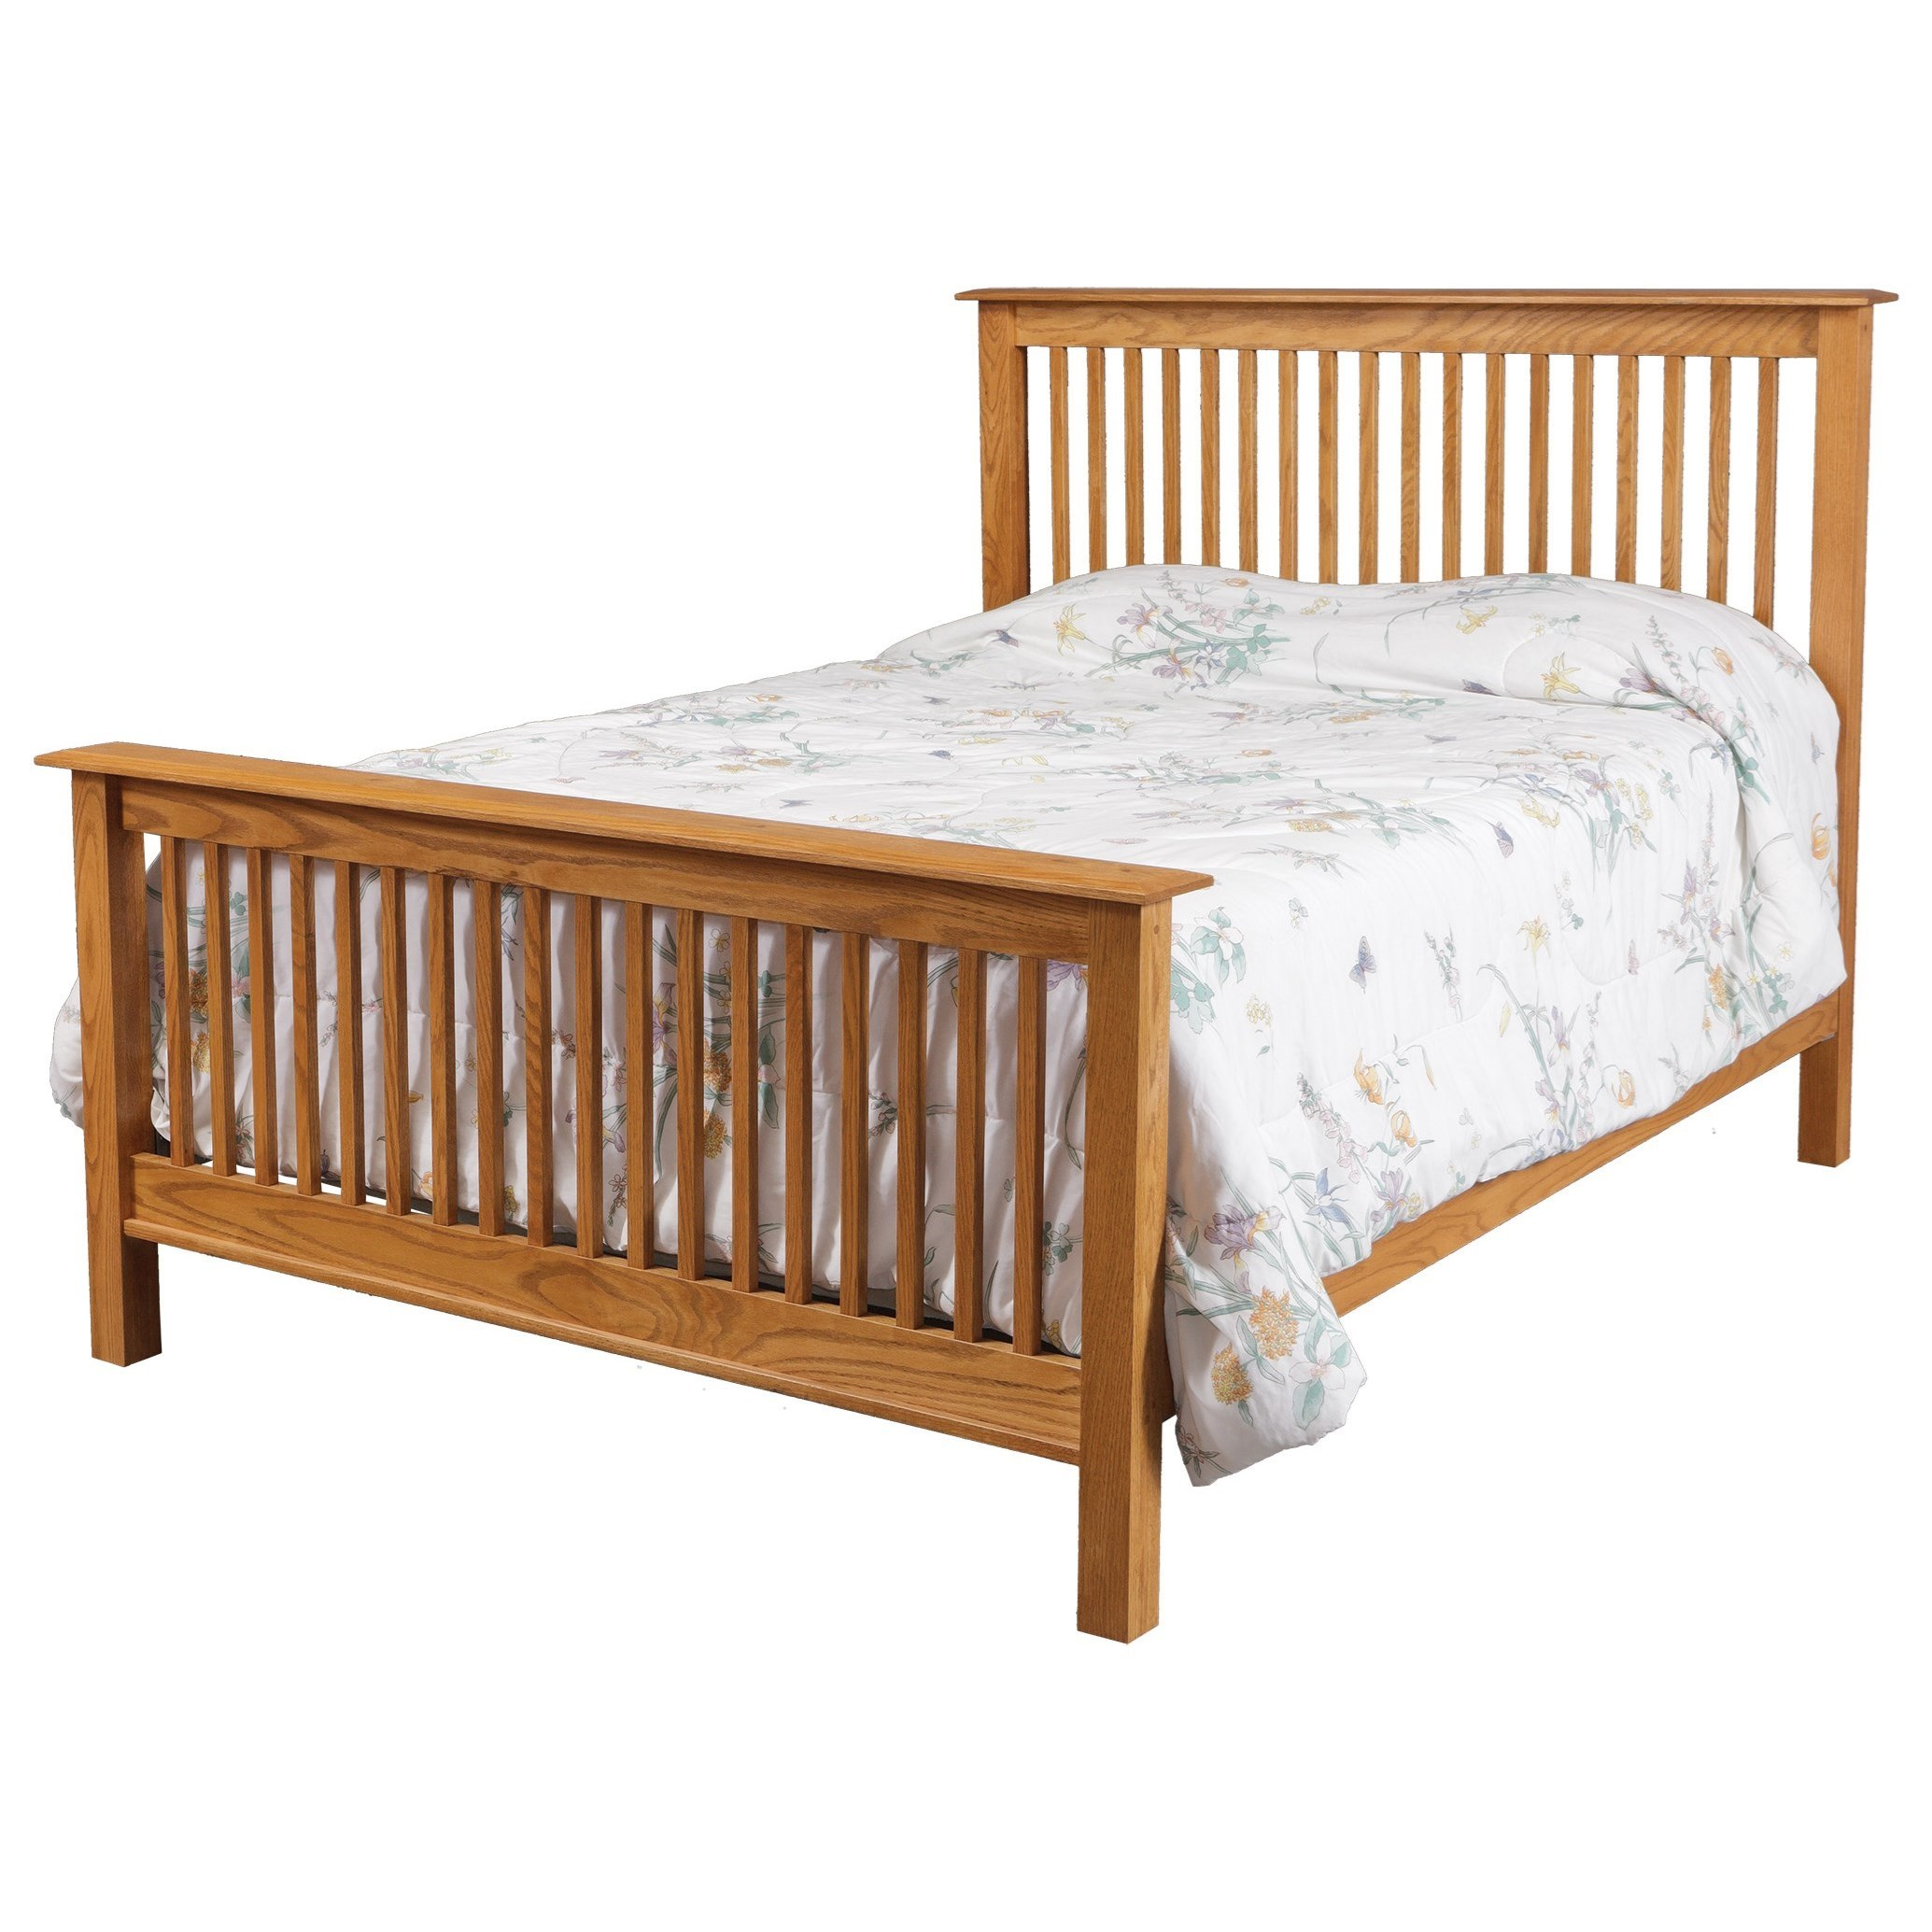 Simplicity King Bed by Daniel's Amish at Furniture Superstore - Rochester, MN